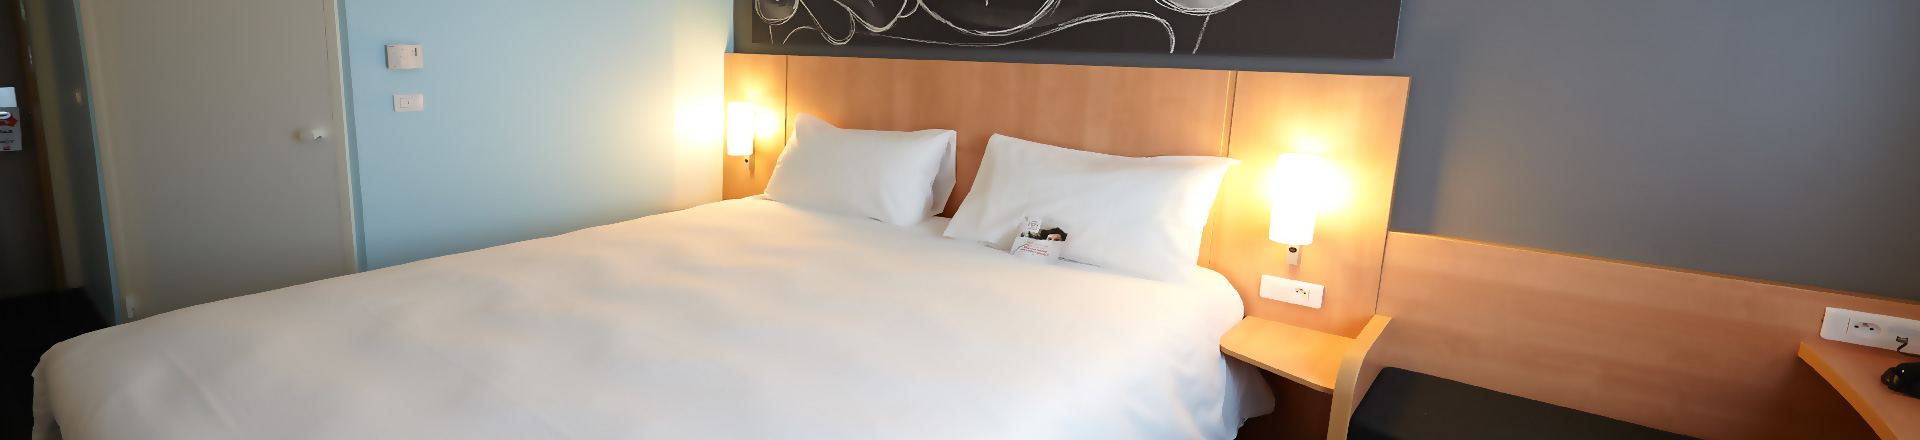 Hotel ibis les herbiers chambre double 1